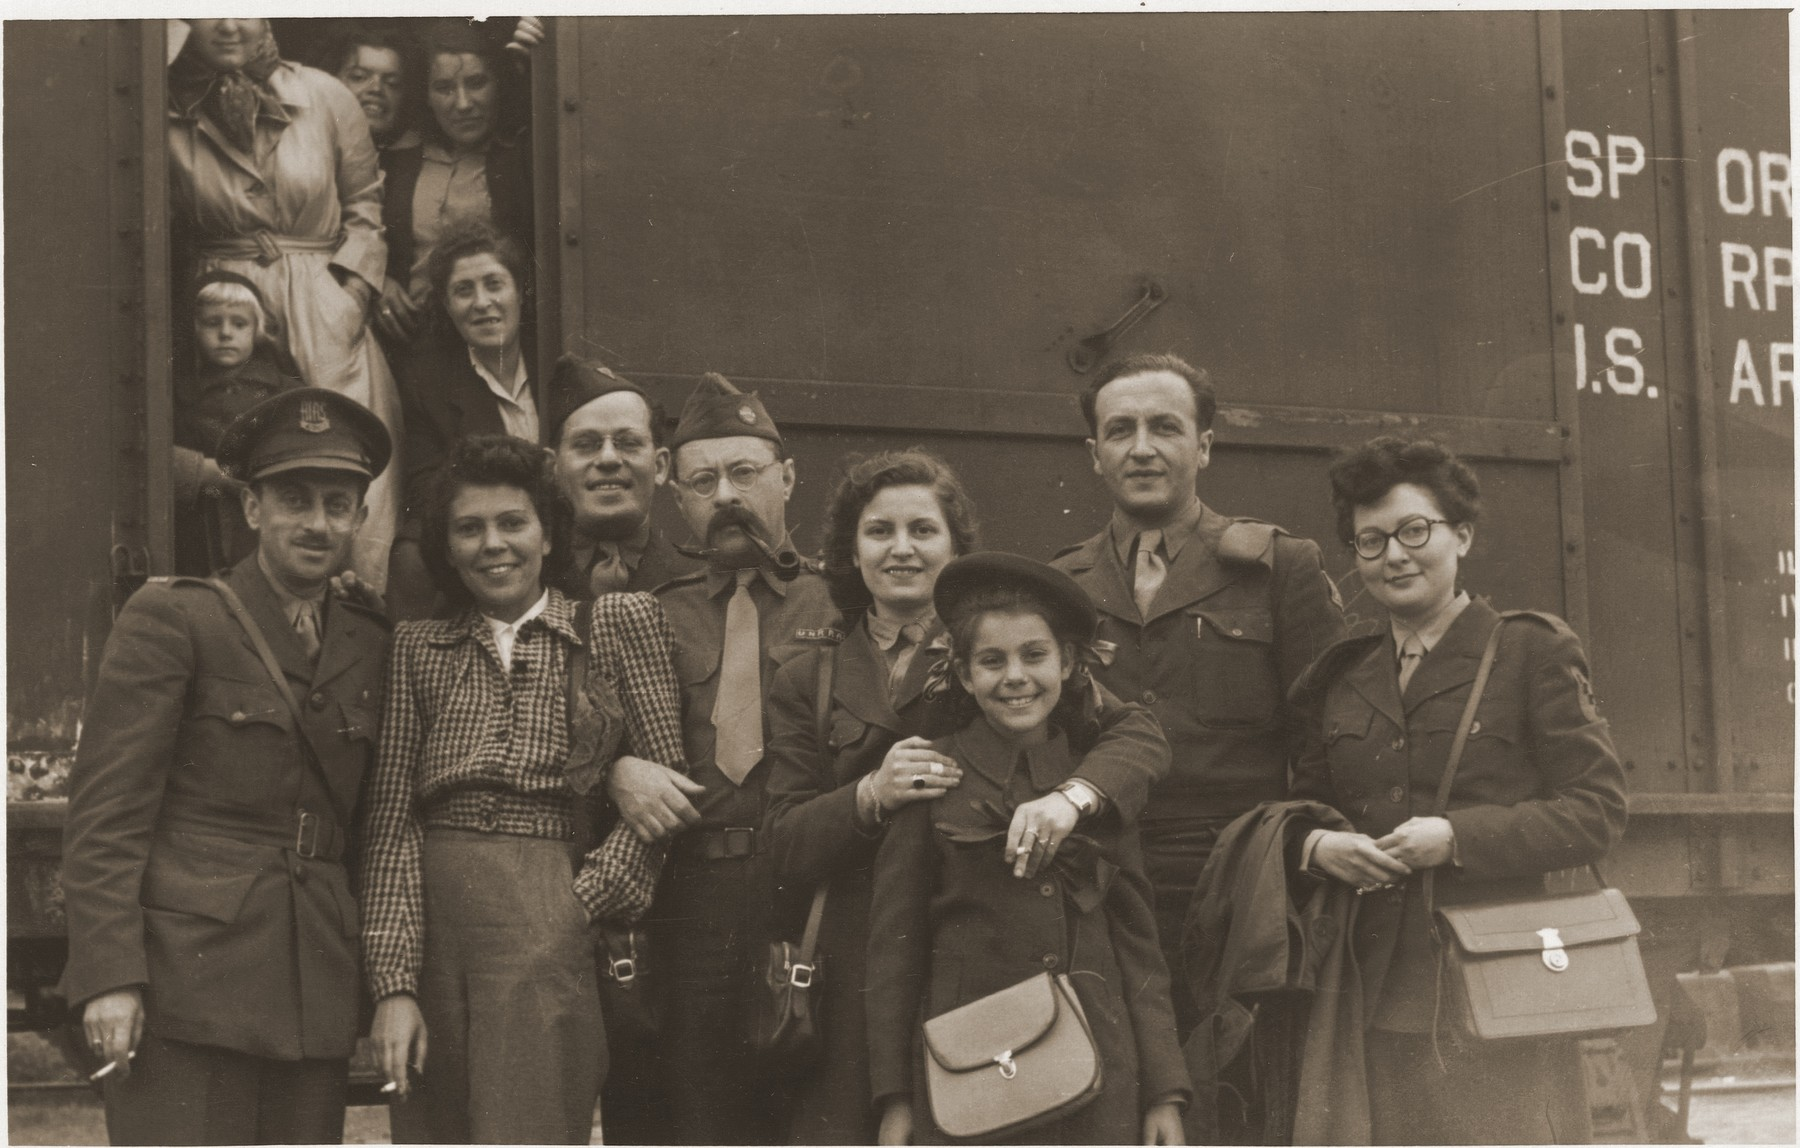 Jewish DPs who are scheduled to depart for the U.S. aboard the Marine Flasher, pose in front of a train in Bremen.